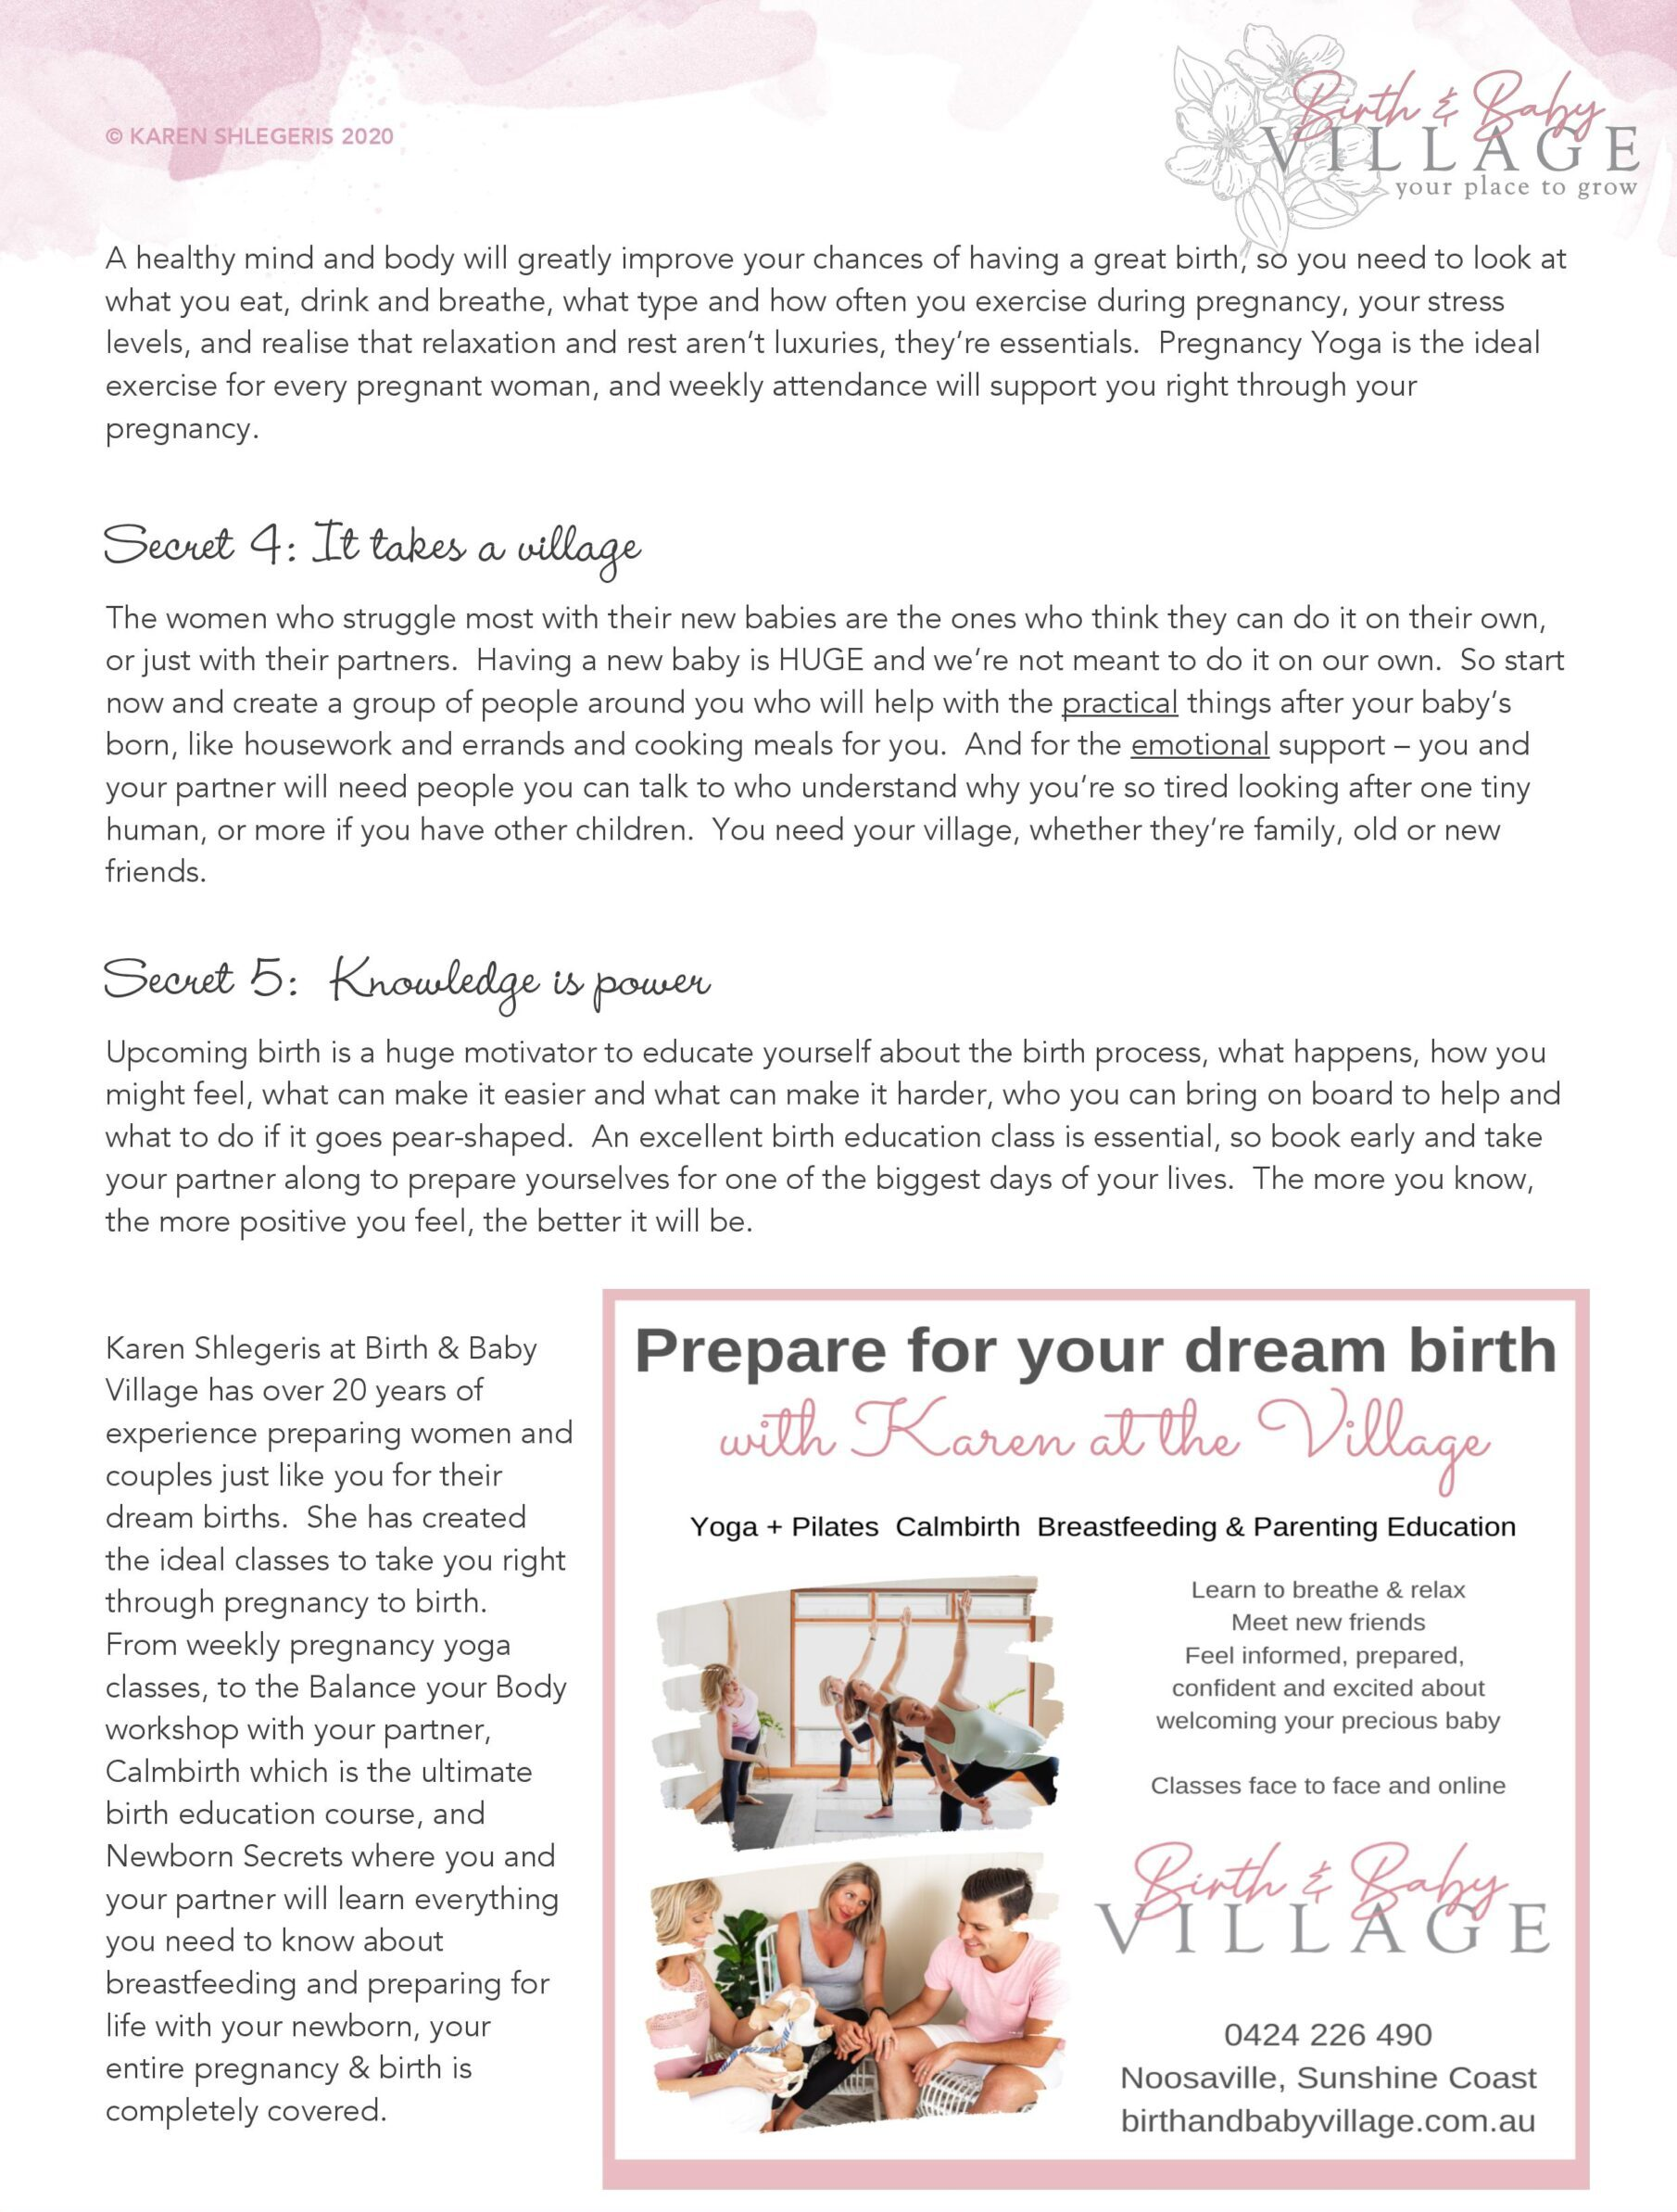 5 Secrets to the birth of your dreams